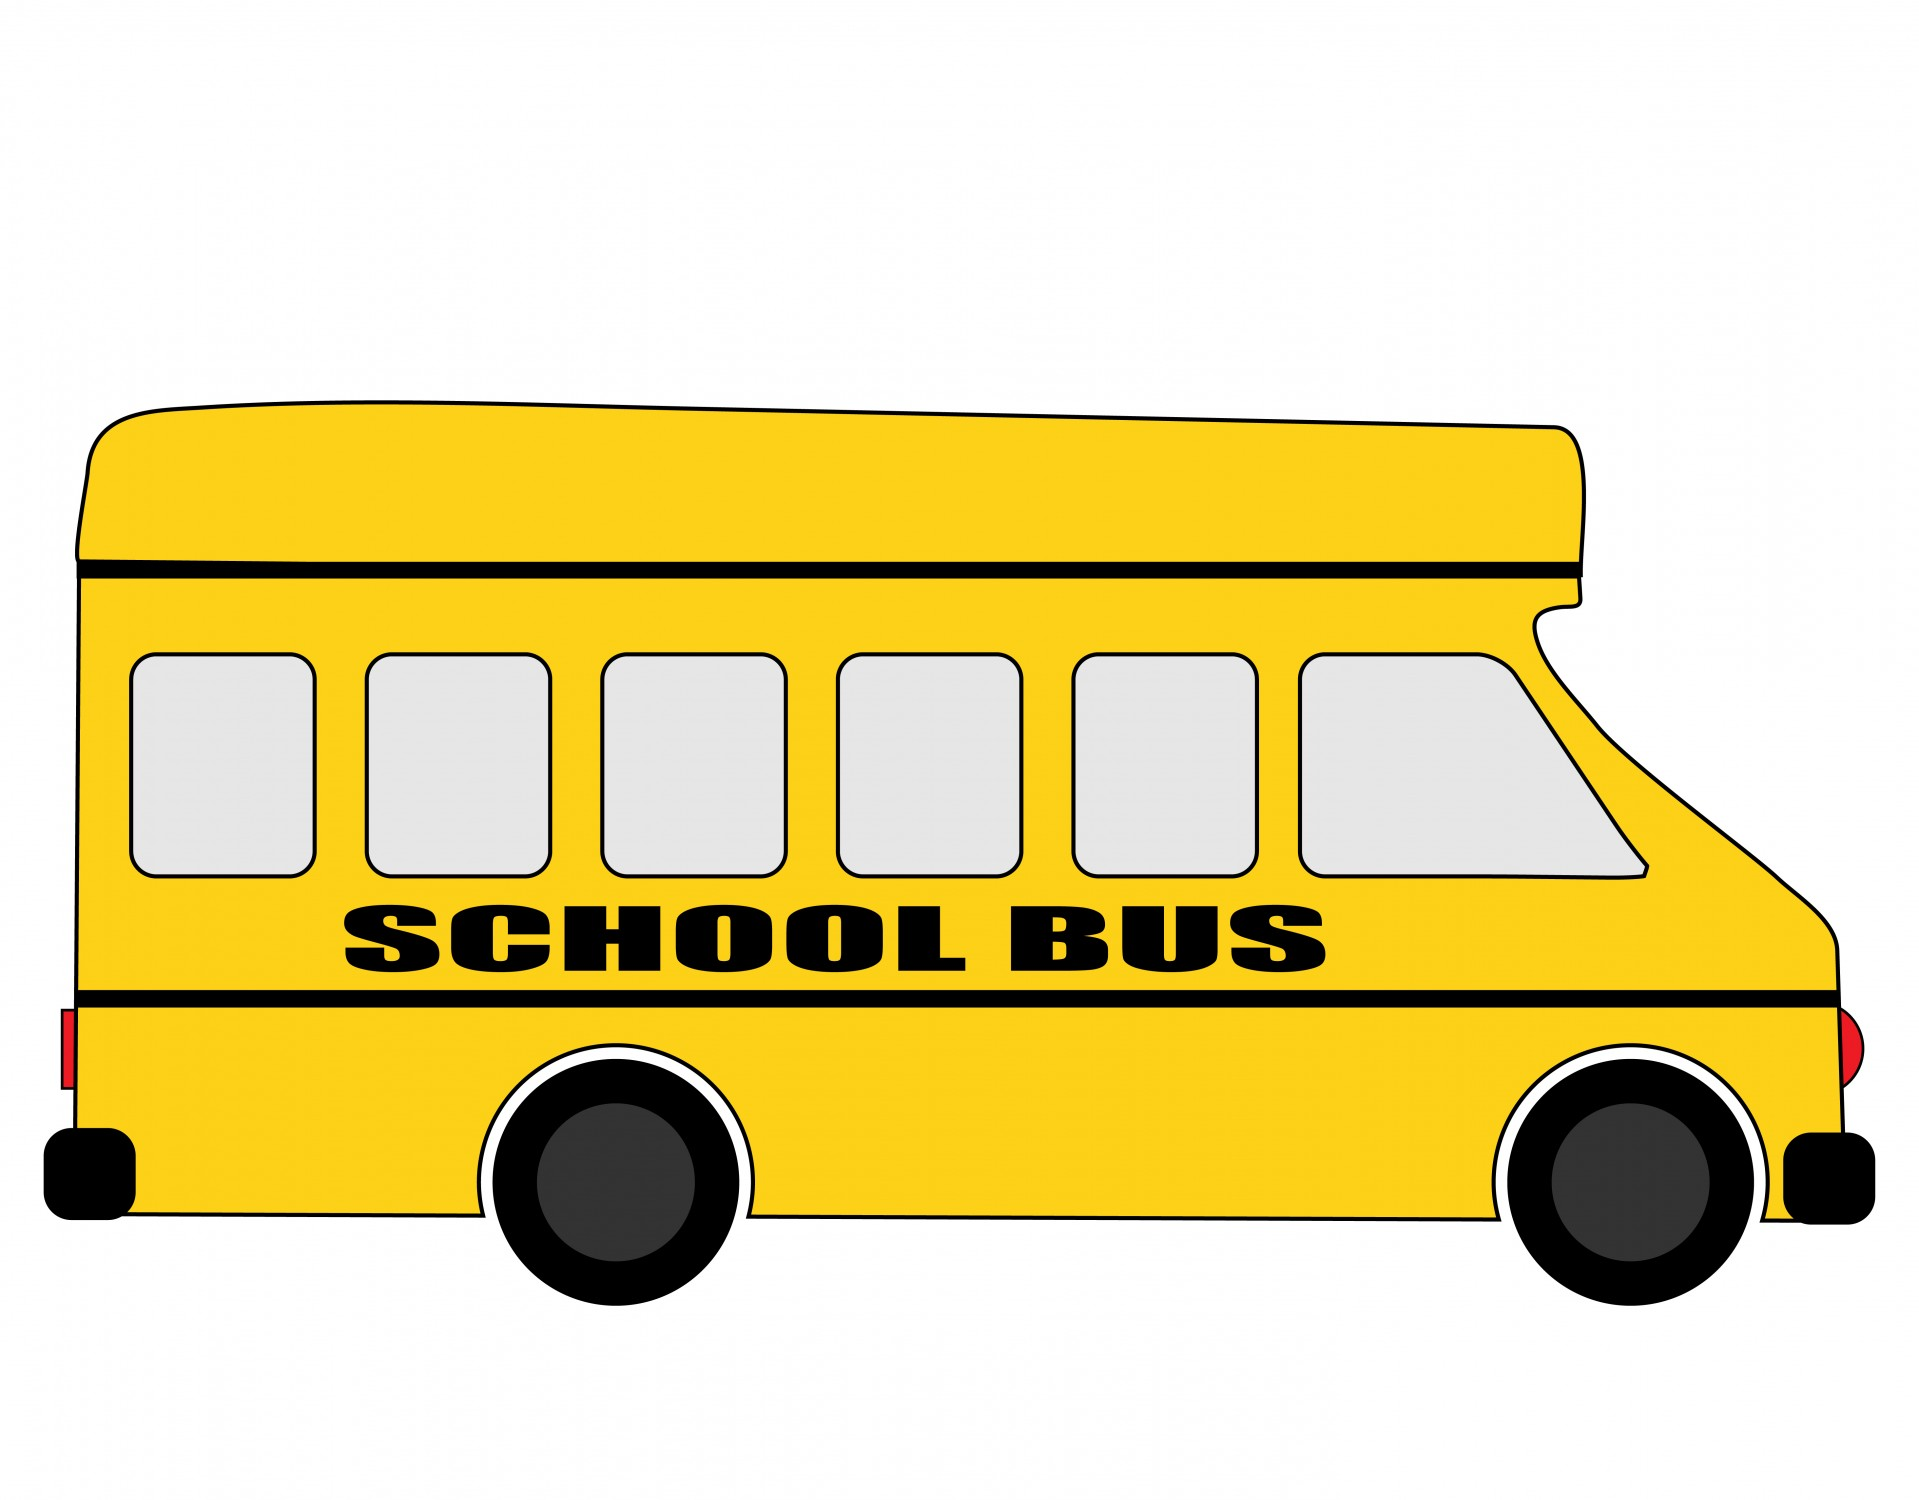 School Bus Stop Clip Art School Bus Clip Art 10 Jpg